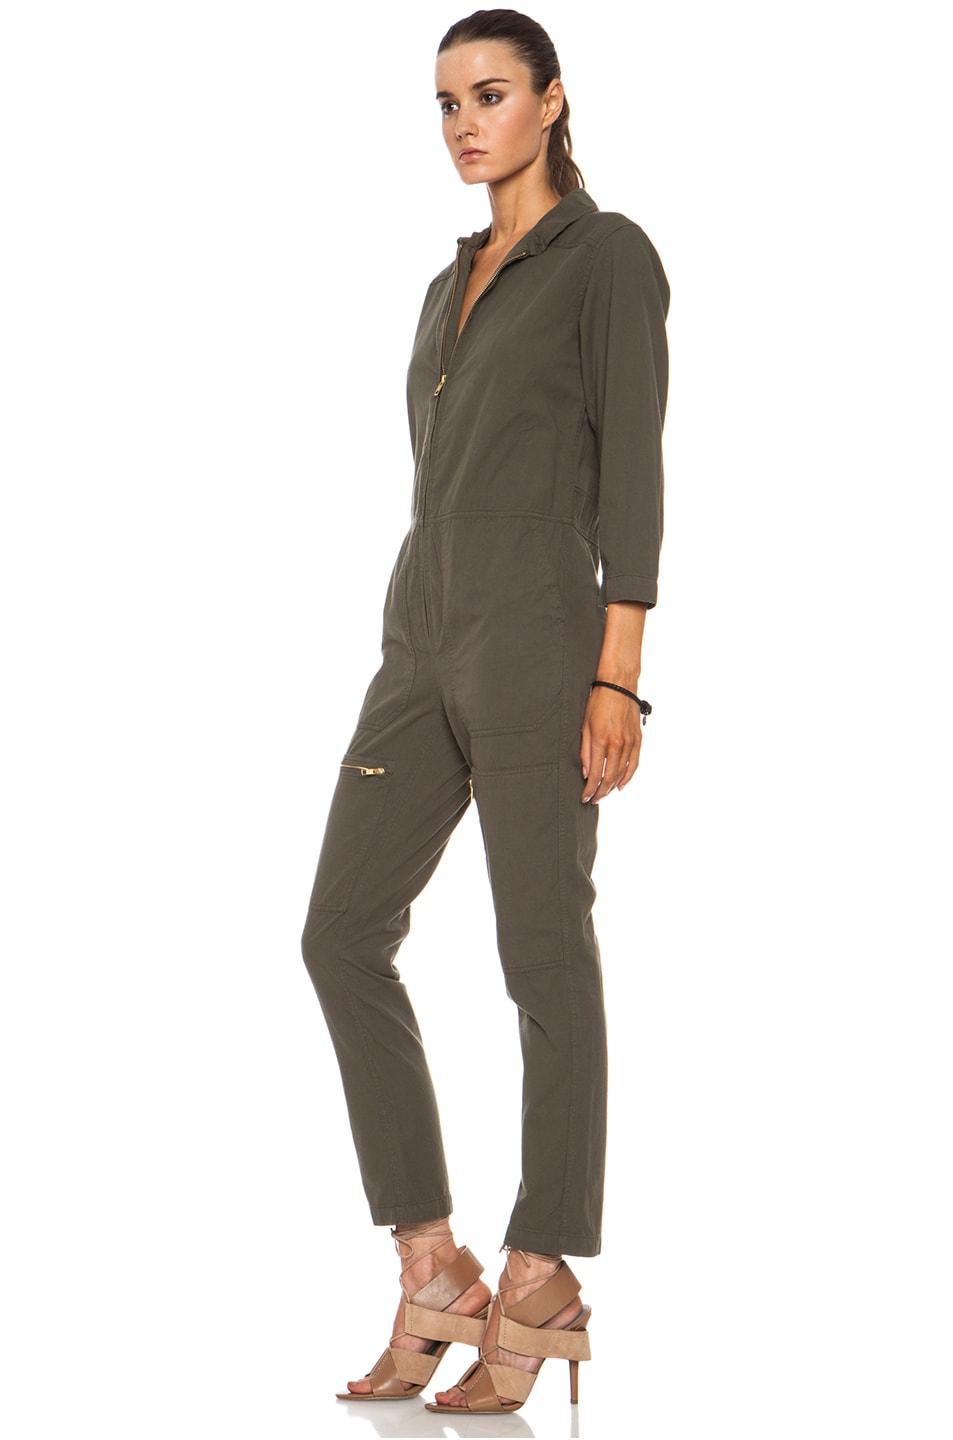 Image 2 of NLST Cotton Flightsuit in Olive Drab